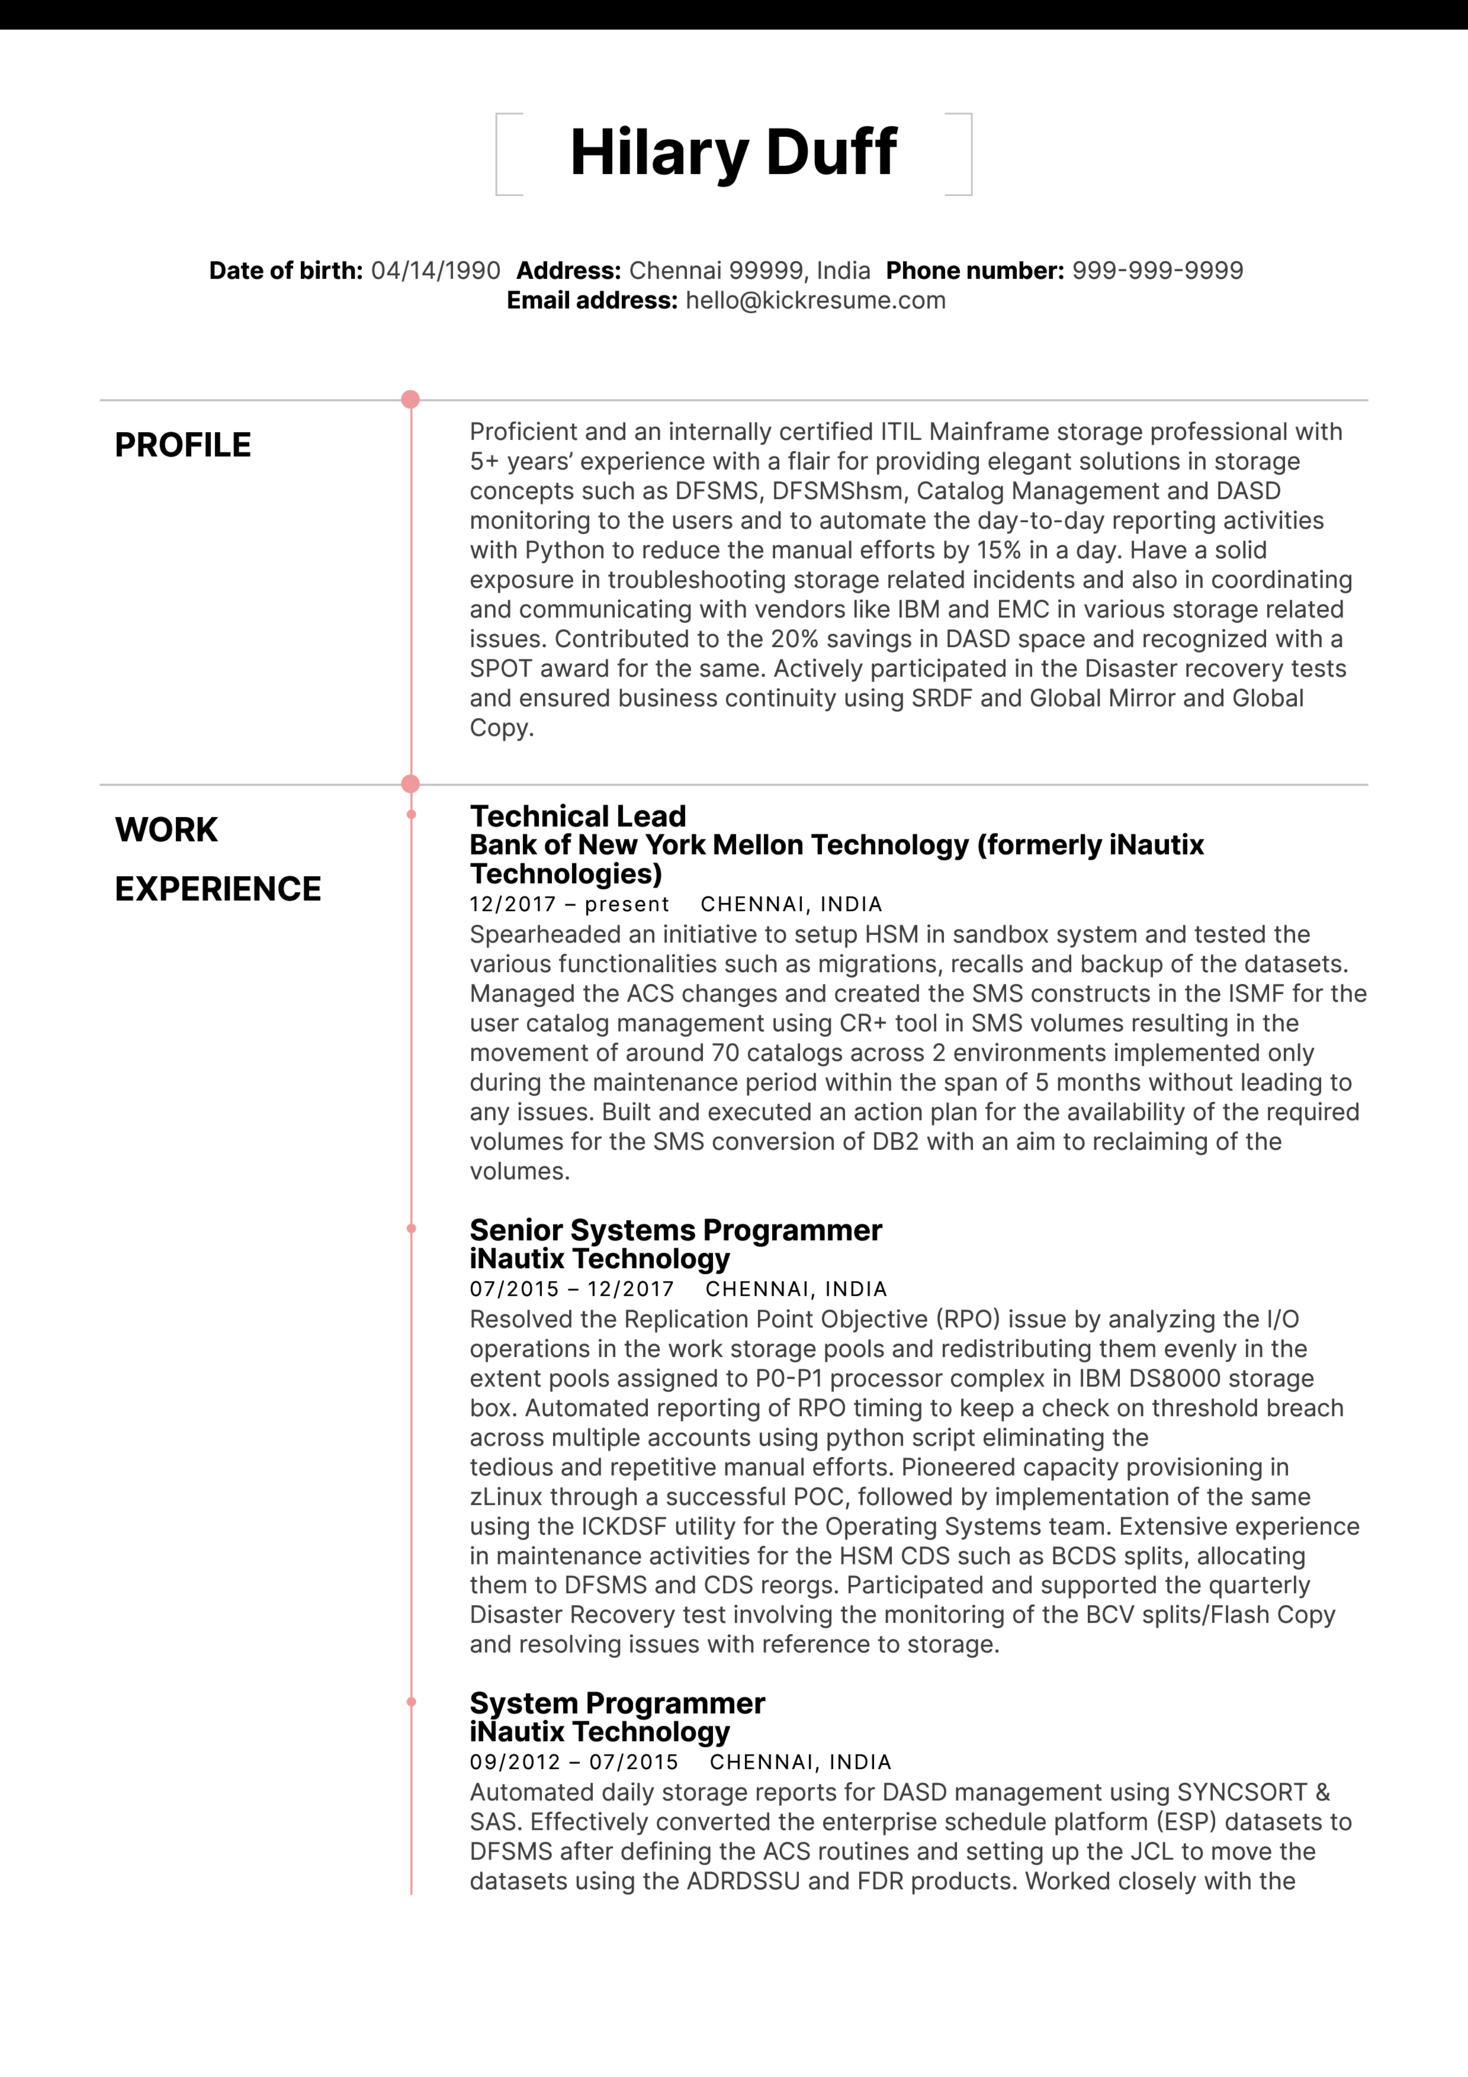 Merck Technical Lead Resume Sample